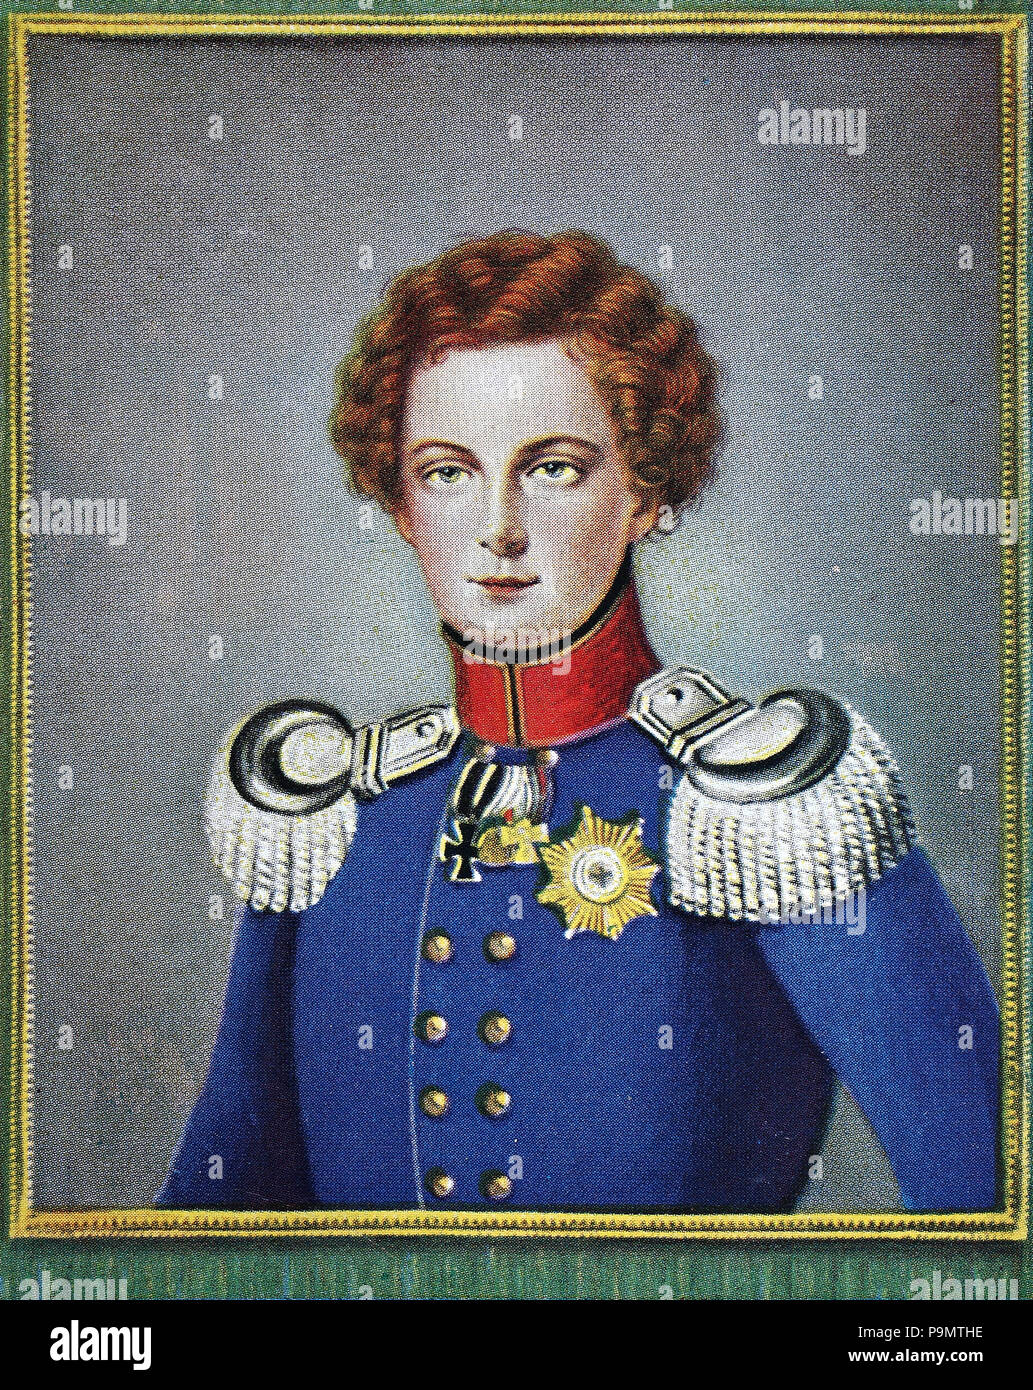 Frederick William IV and the Prussian Monarchy 1840-1861